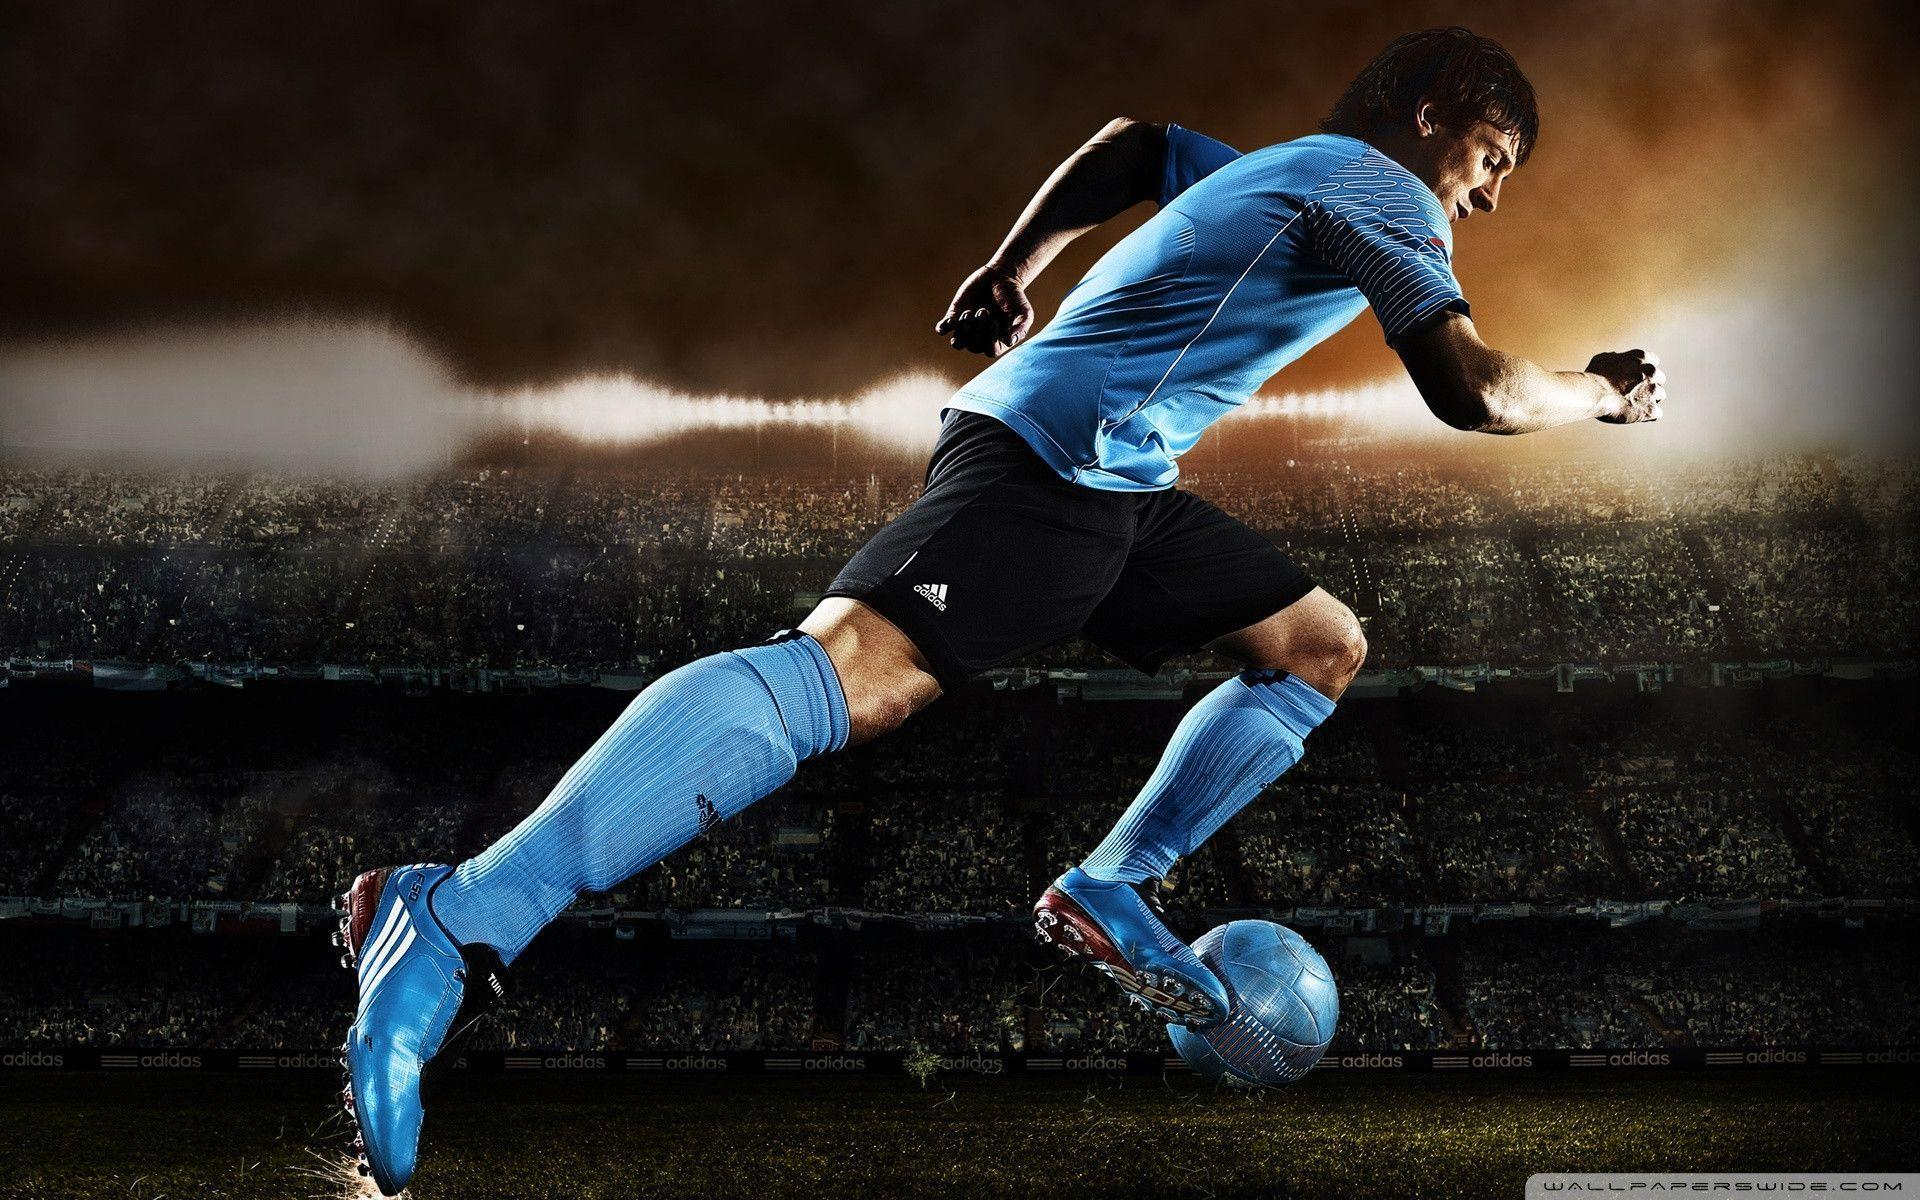 Lionel Messi Wallpapers - Full HD wallpaper search